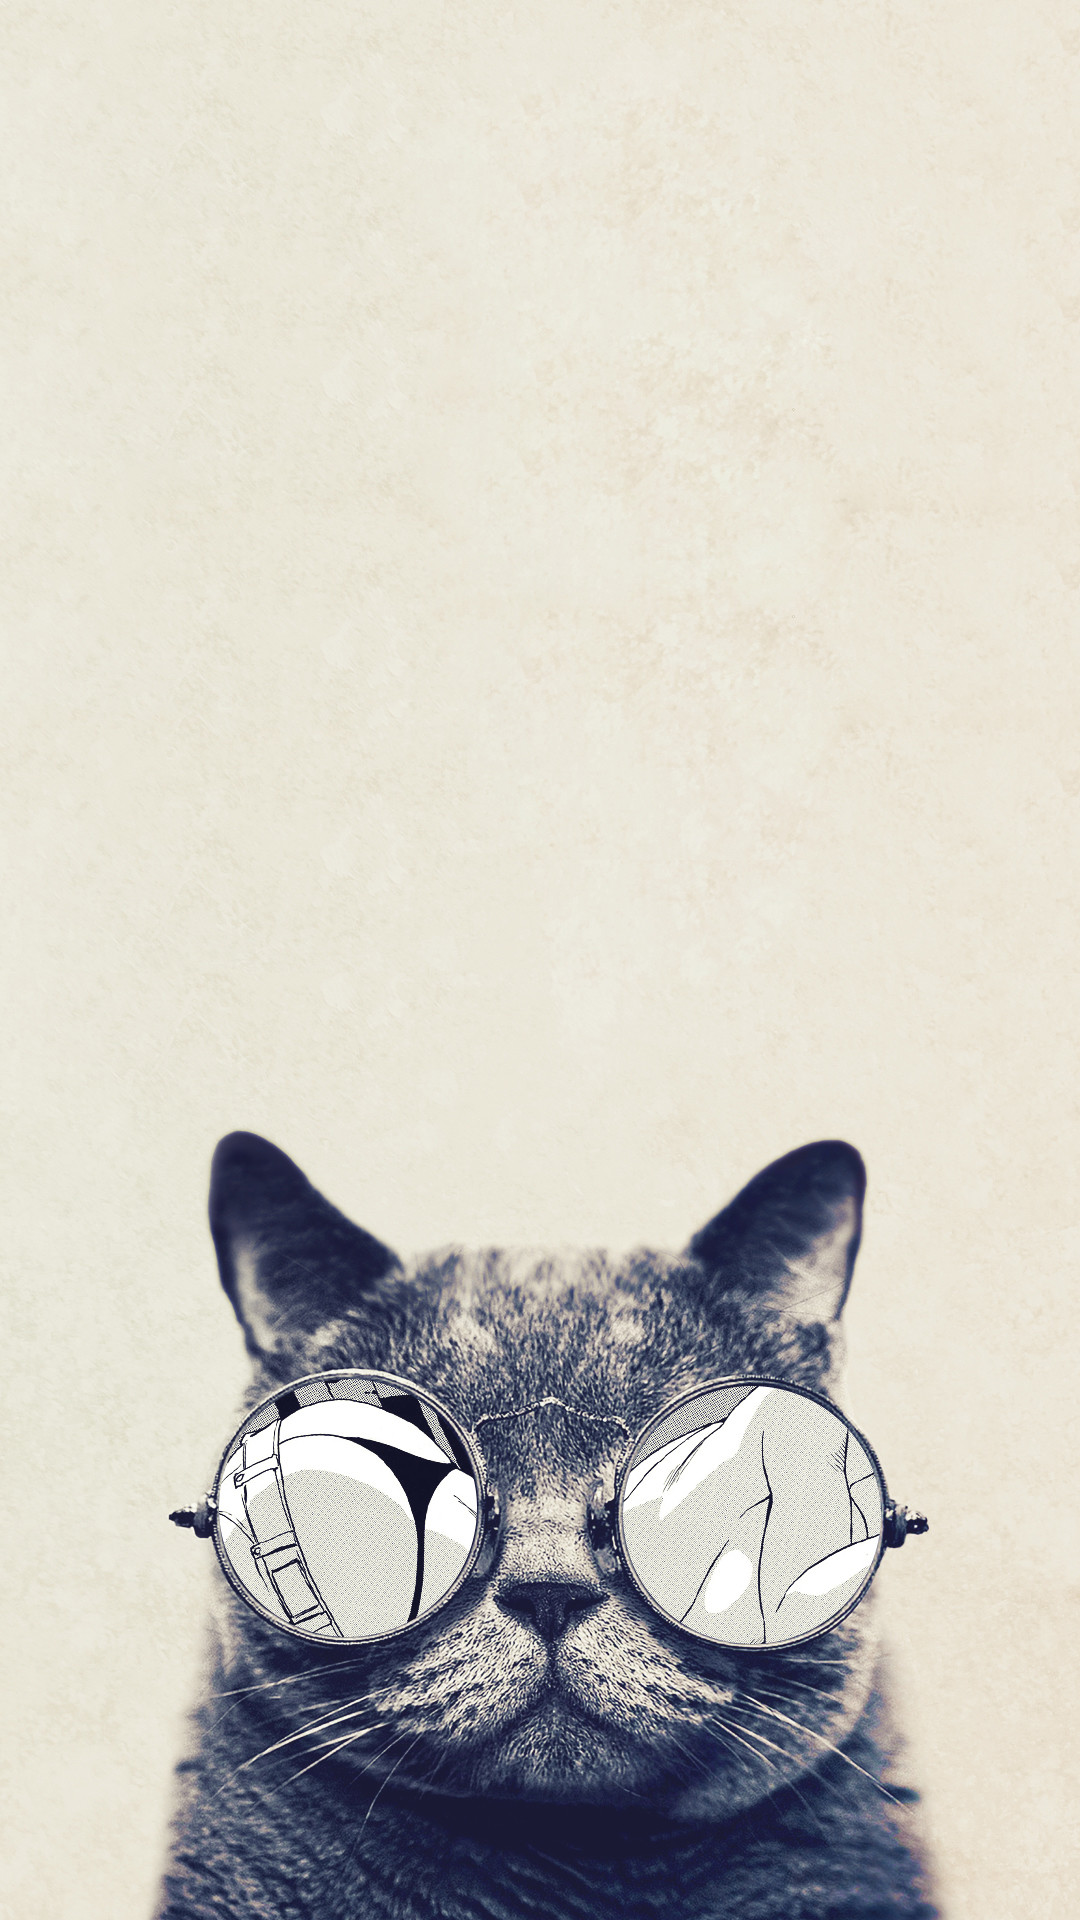 1080x1920 cool cat glasses android wallpaper